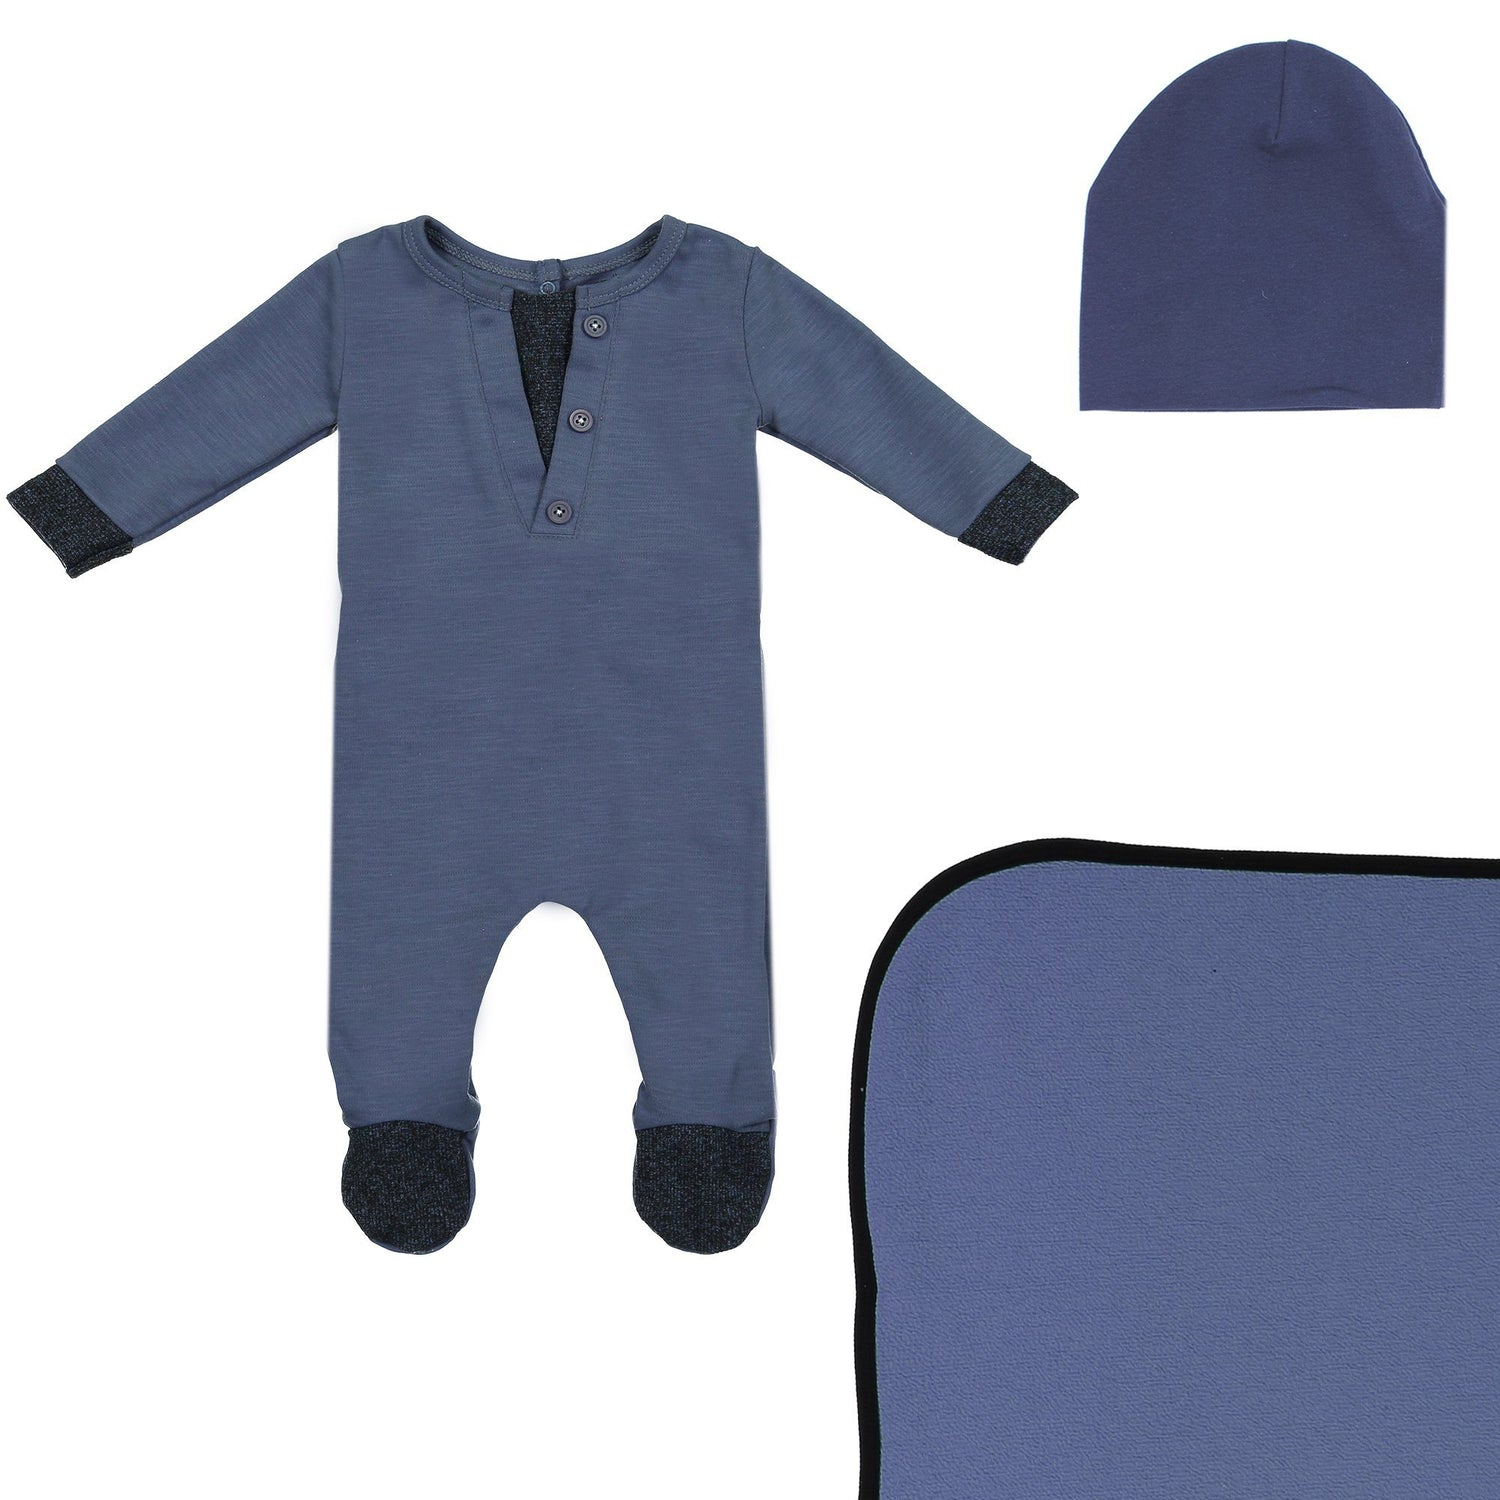 Cotton Henley Footie Set Maniere Accessories Navy 3 Month